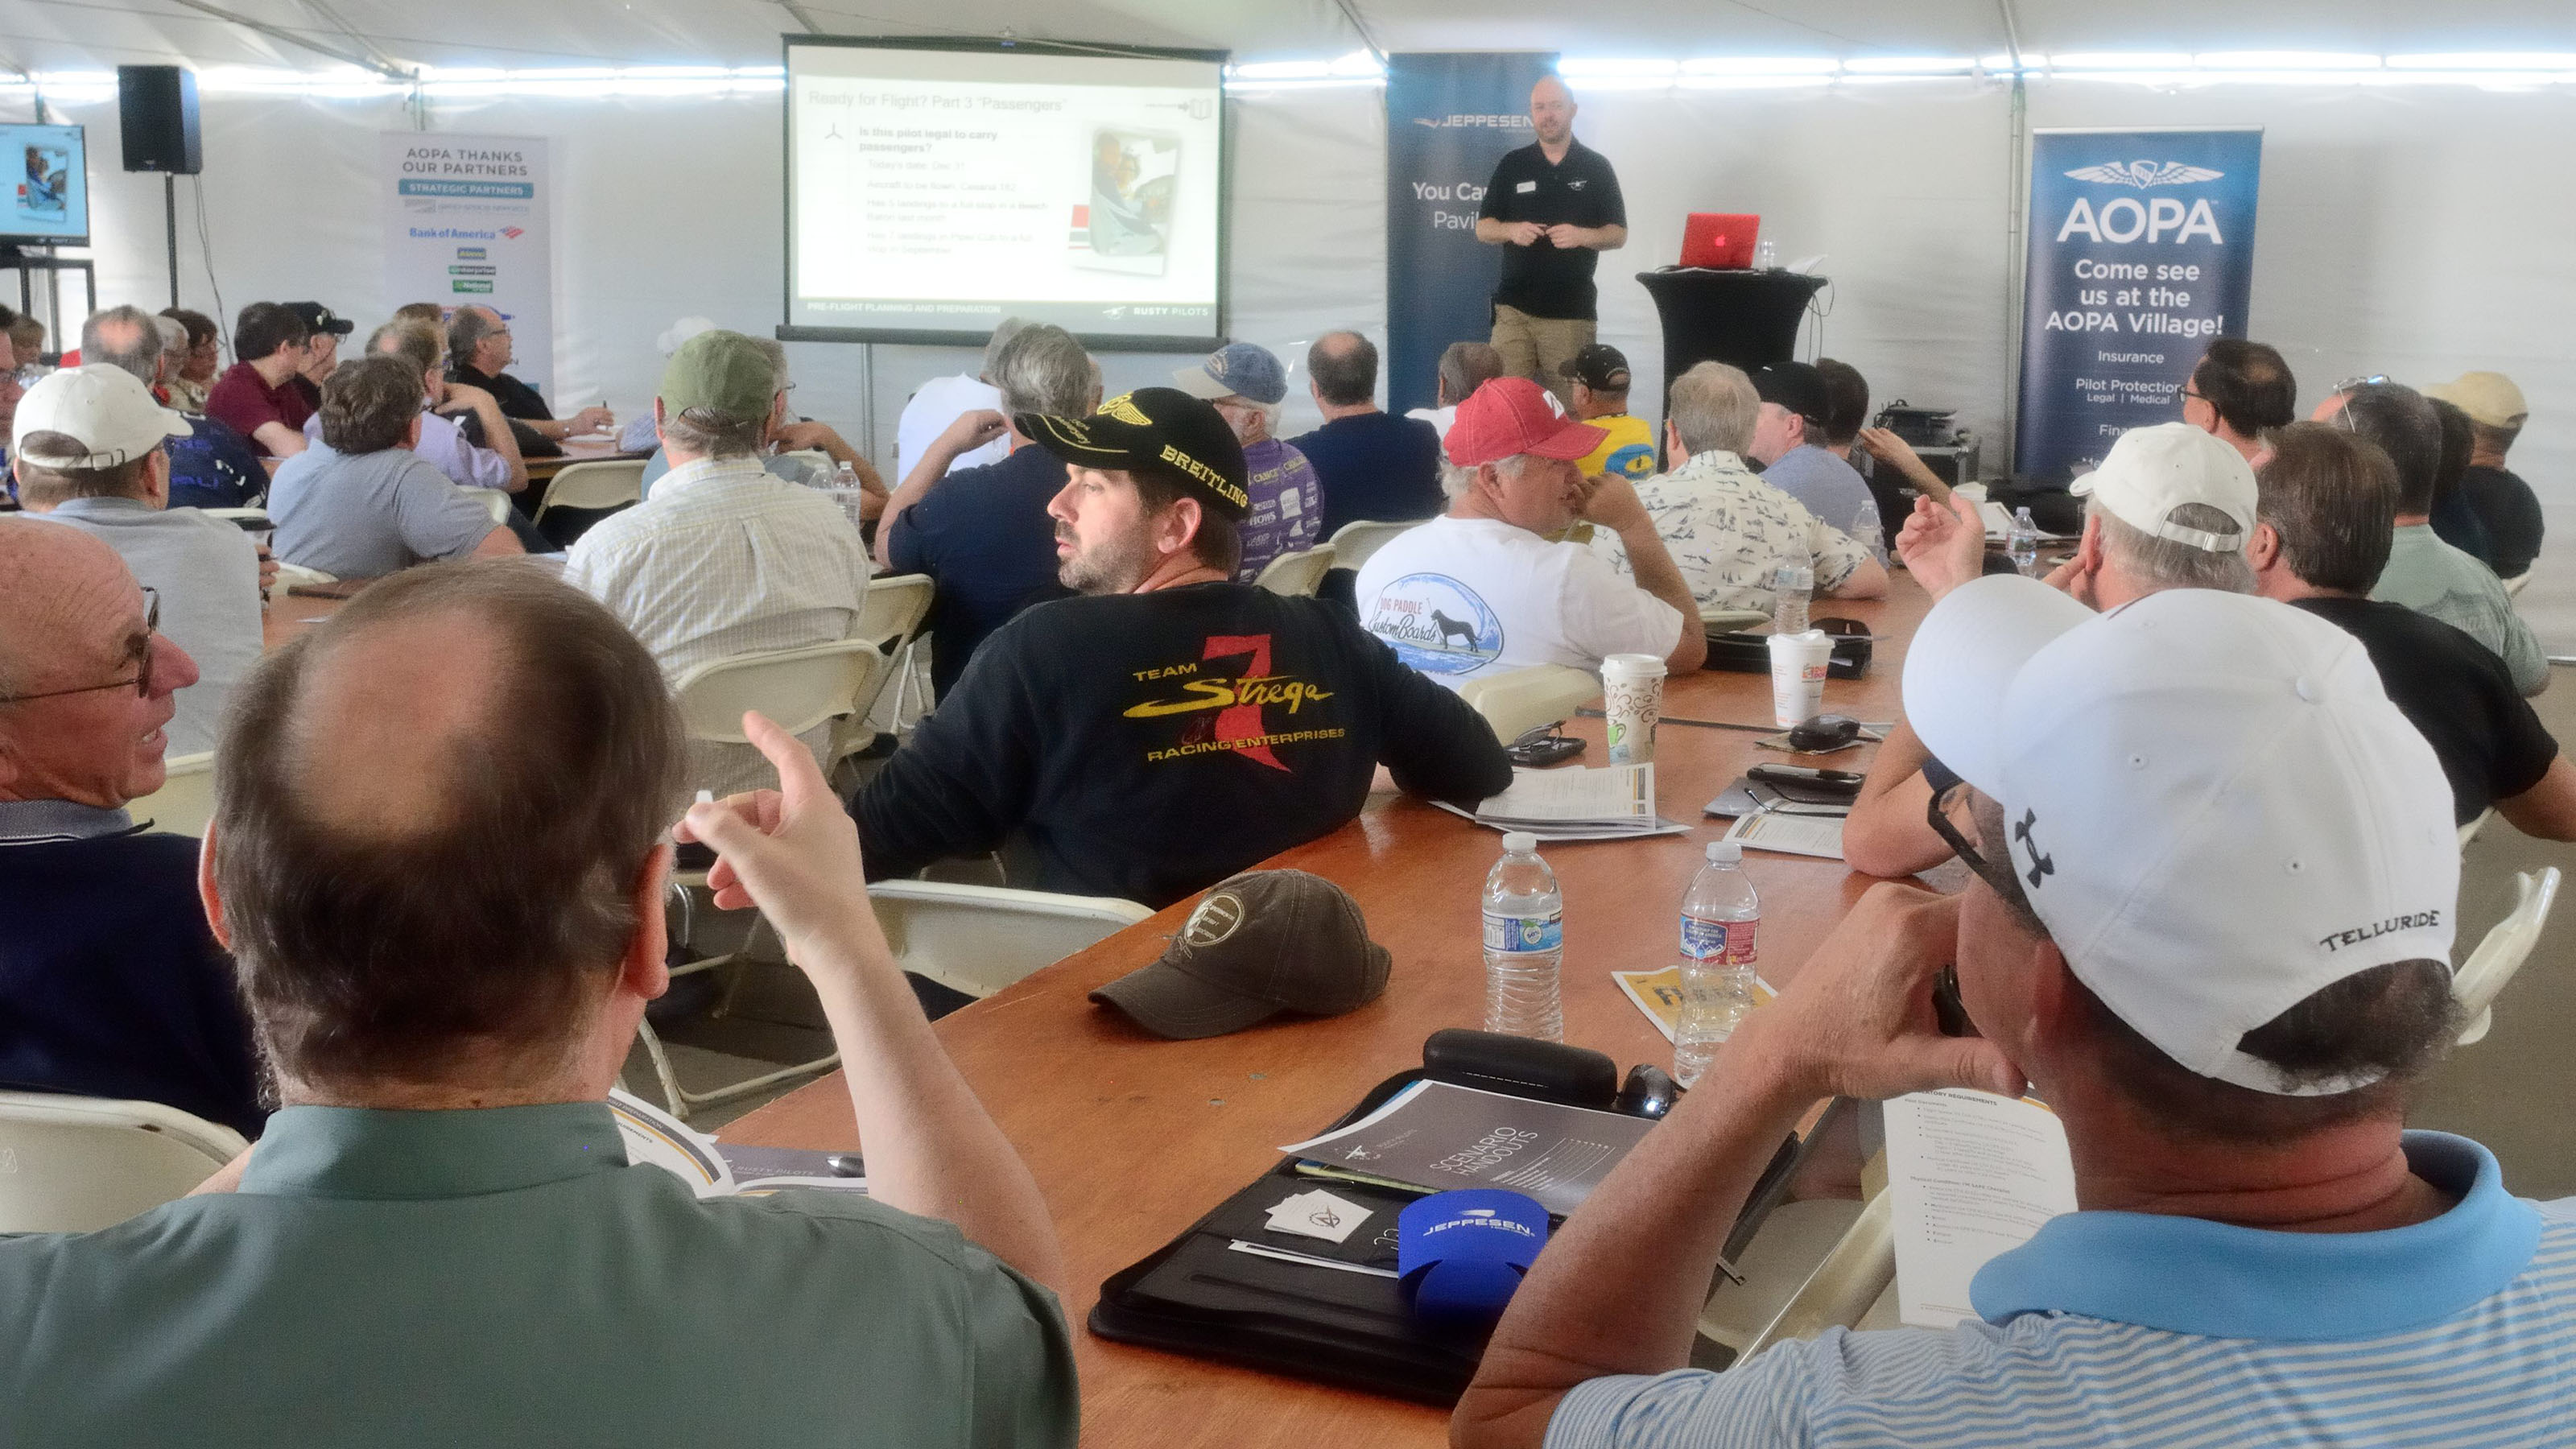 Attendees at the AOPA Fly-In at Camarillo, California, participate in safety seminars. Photo by Mike Collins.